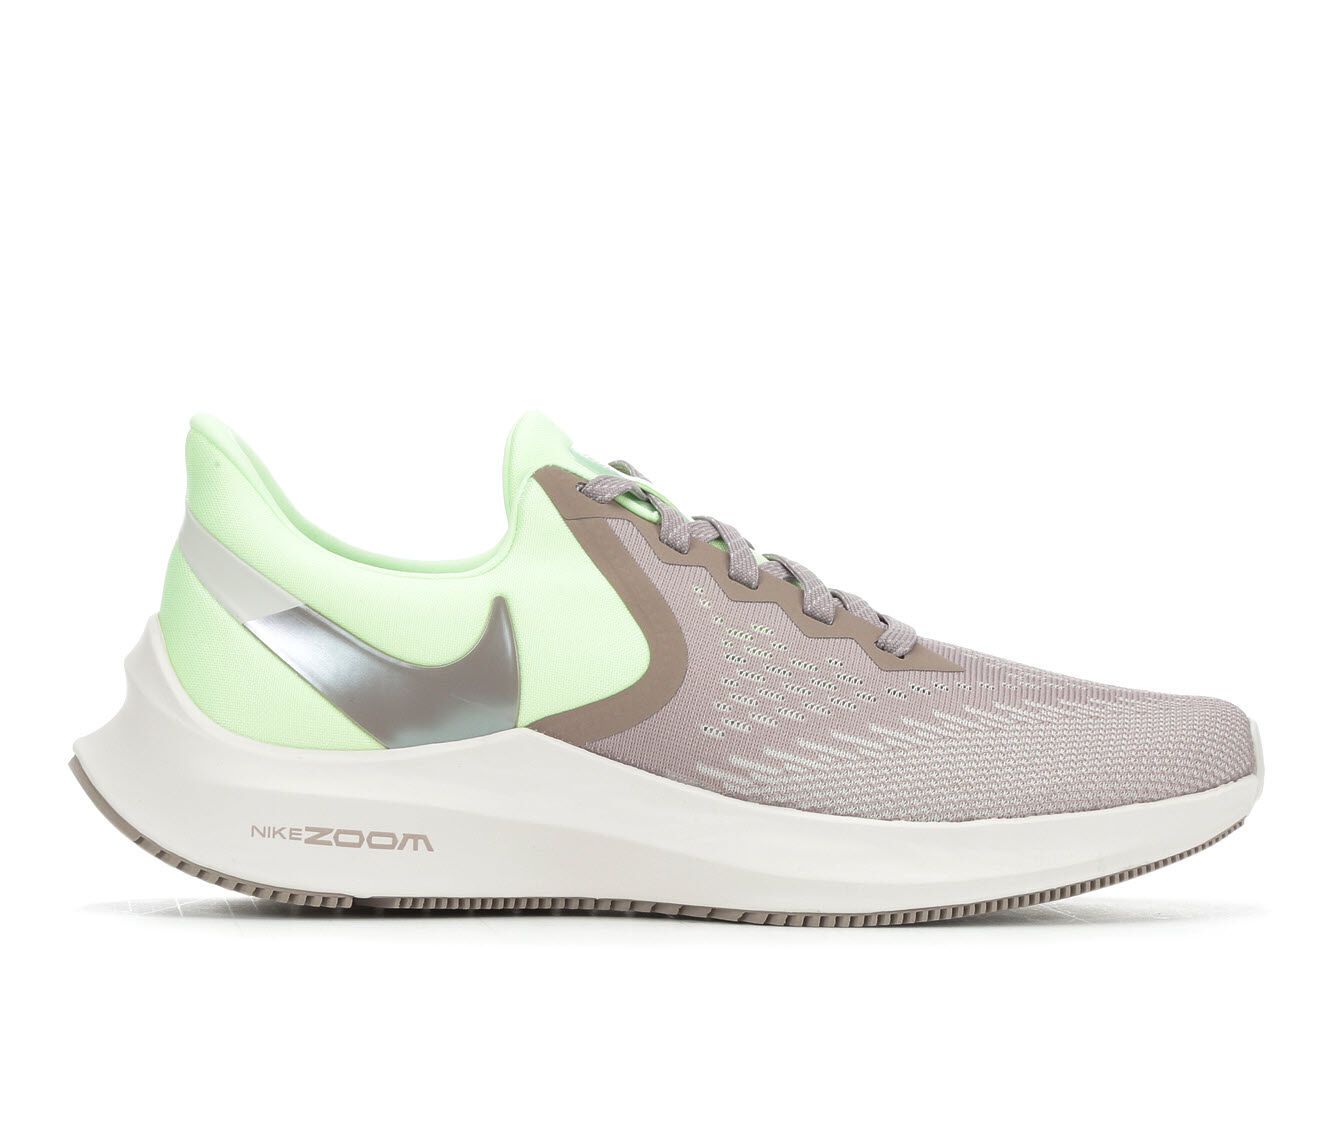 Women's Nike Zoom Winflo 6 Running Shoes Volt/Pumice